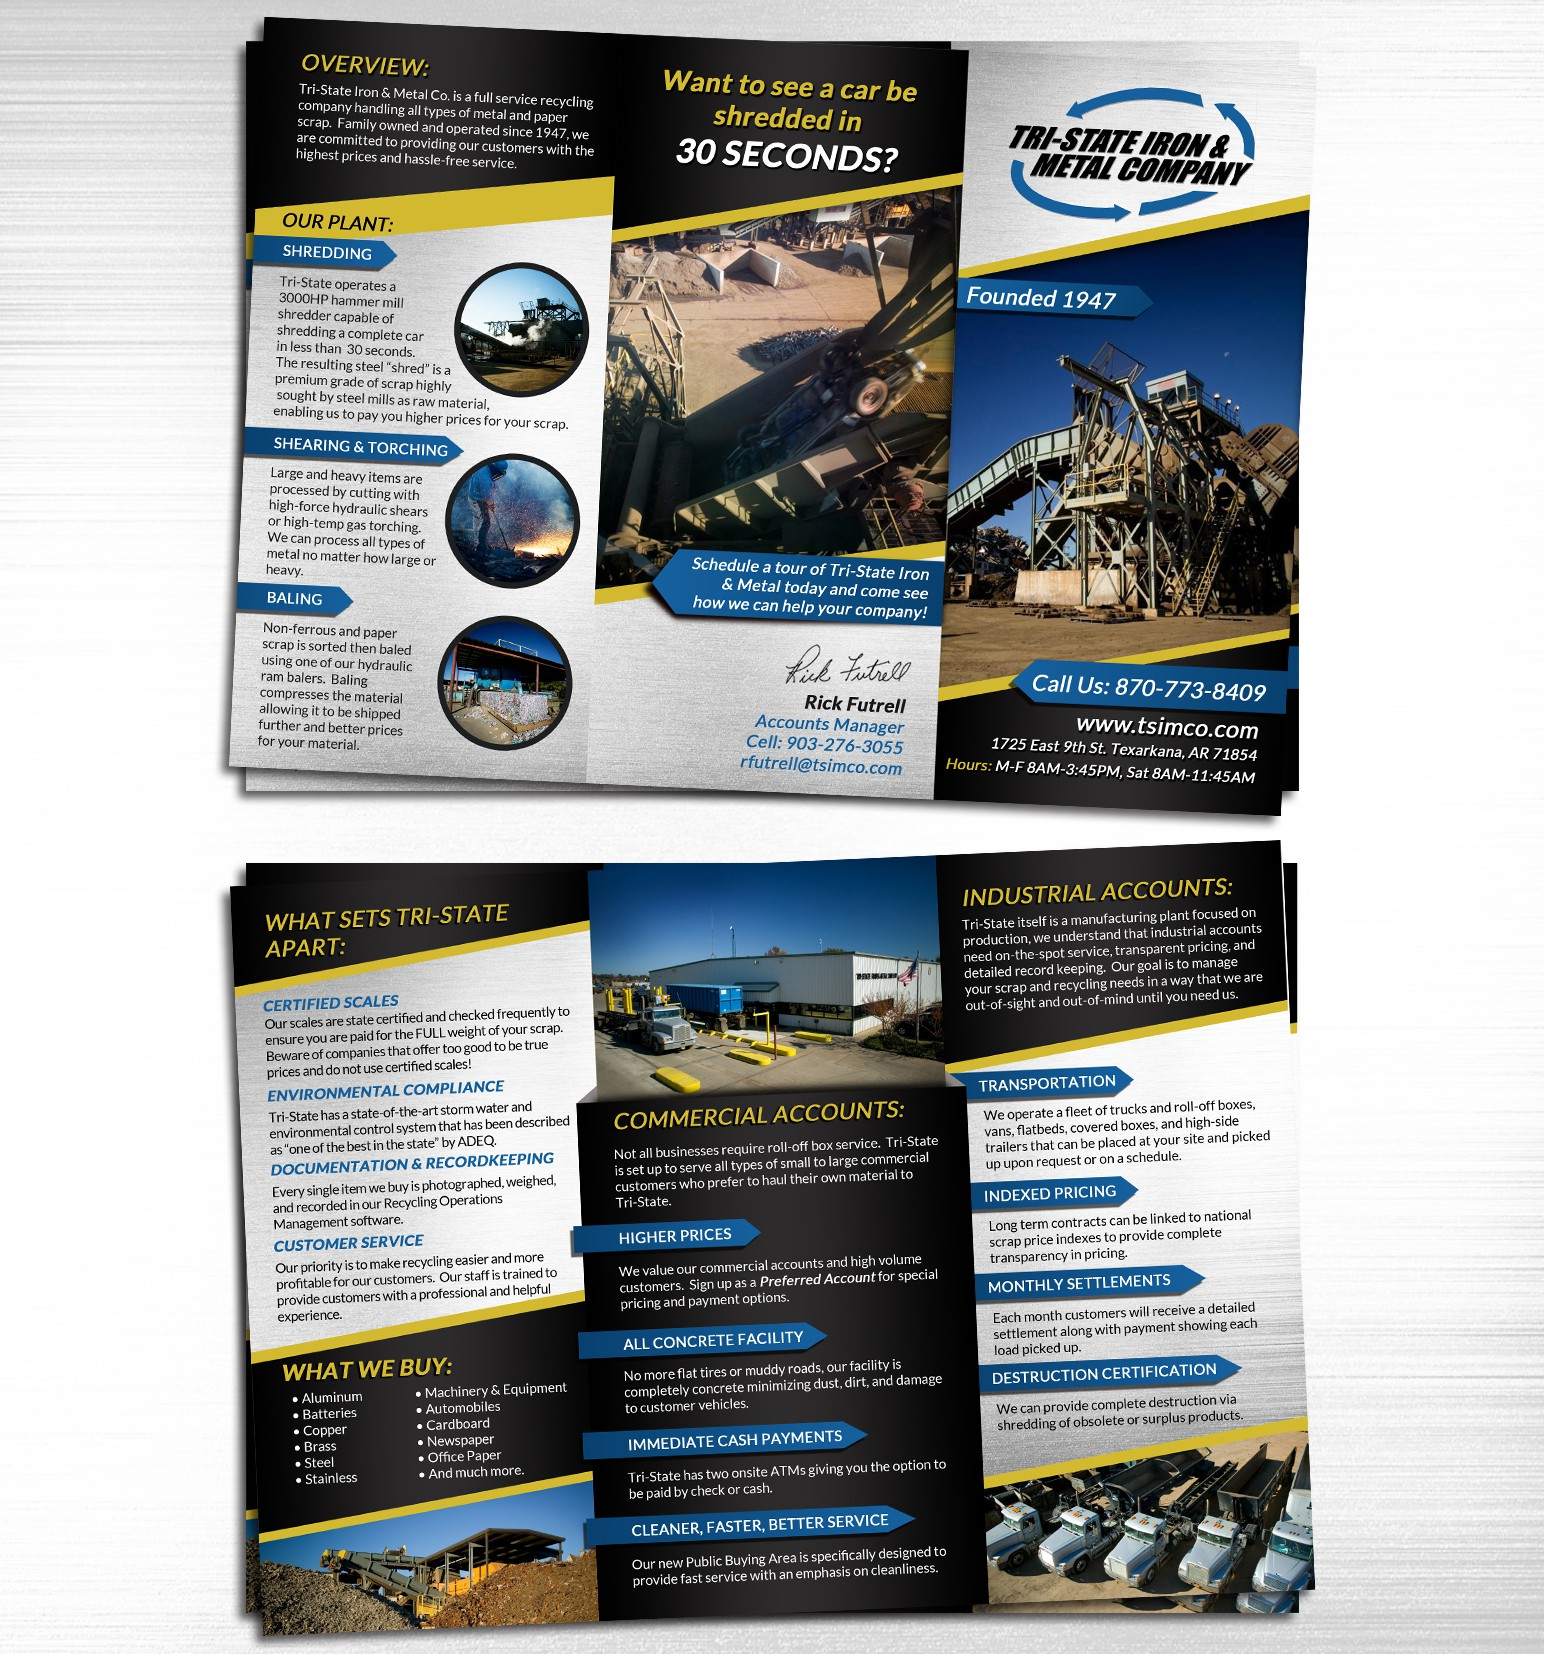 New brochure design wanted for Tri-State Iron & Metal Co.